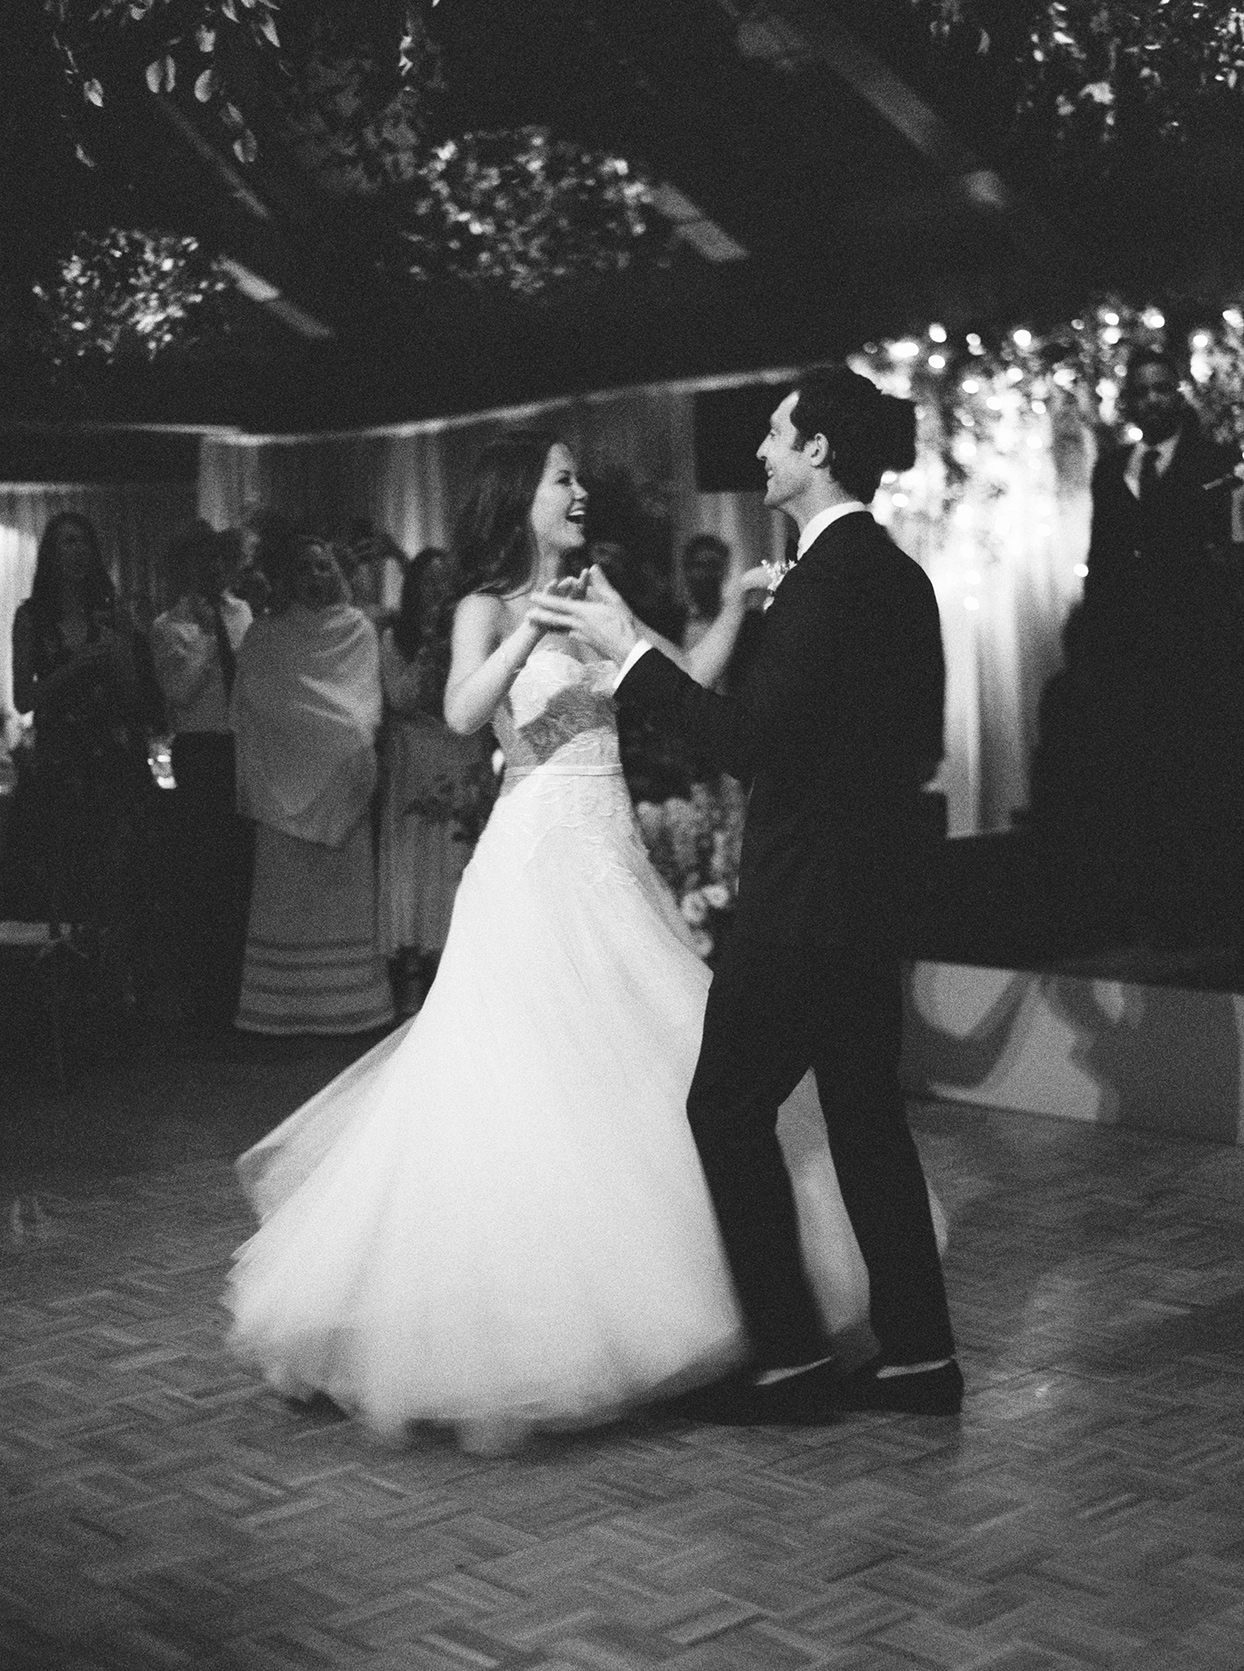 kimmie mike wedding first dance smiling and twirling